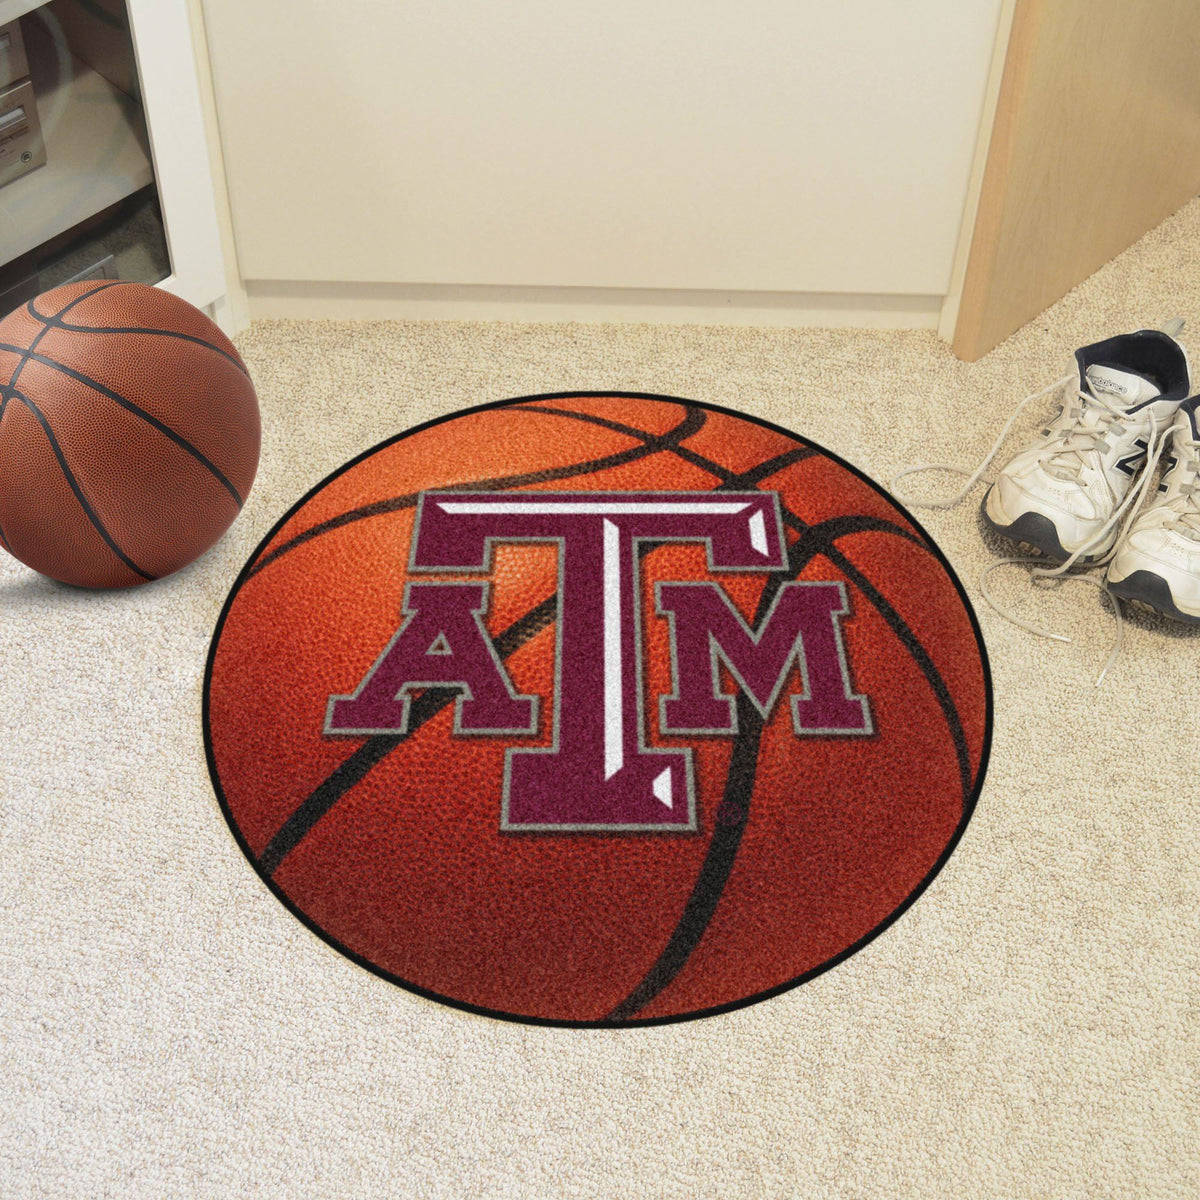 Collegiate - Basketball Mat: T - Z Collegiate Mats, Rectangular Mats, Basketball Mat, Collegiate, Home Fan Mats Texas A&M